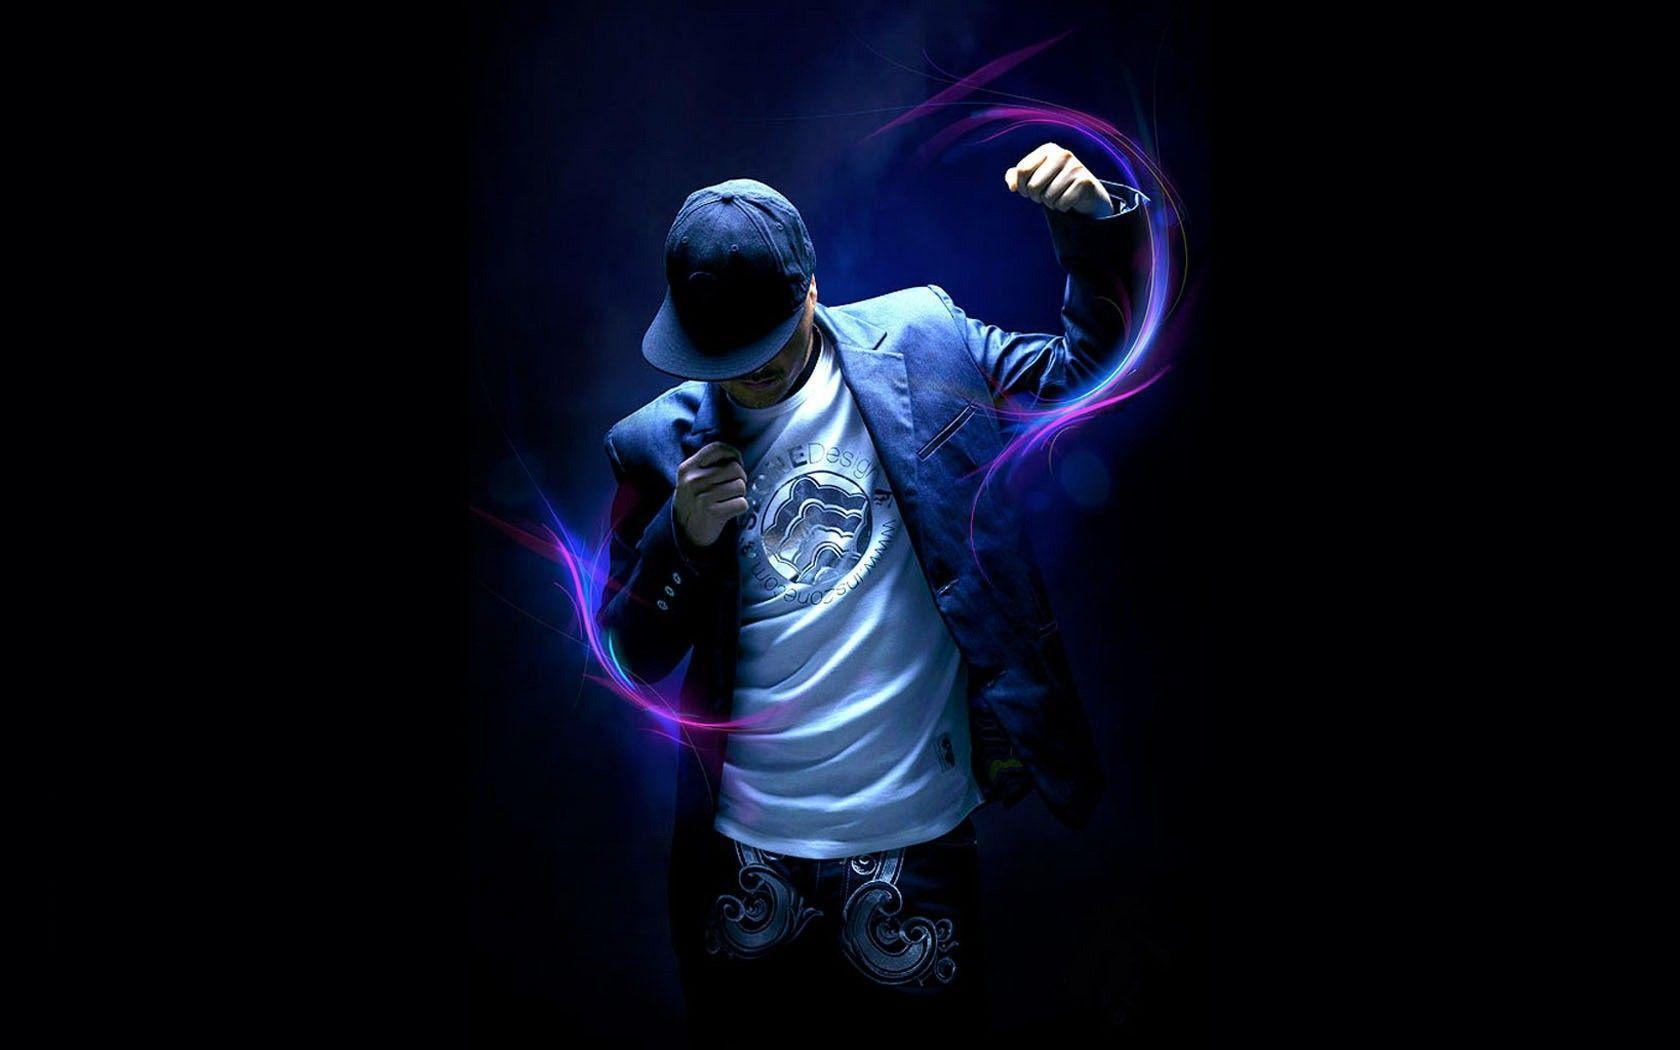 Hip hop dance wallpapers wallpaper cave - Cool boy wallpaper hd download ...